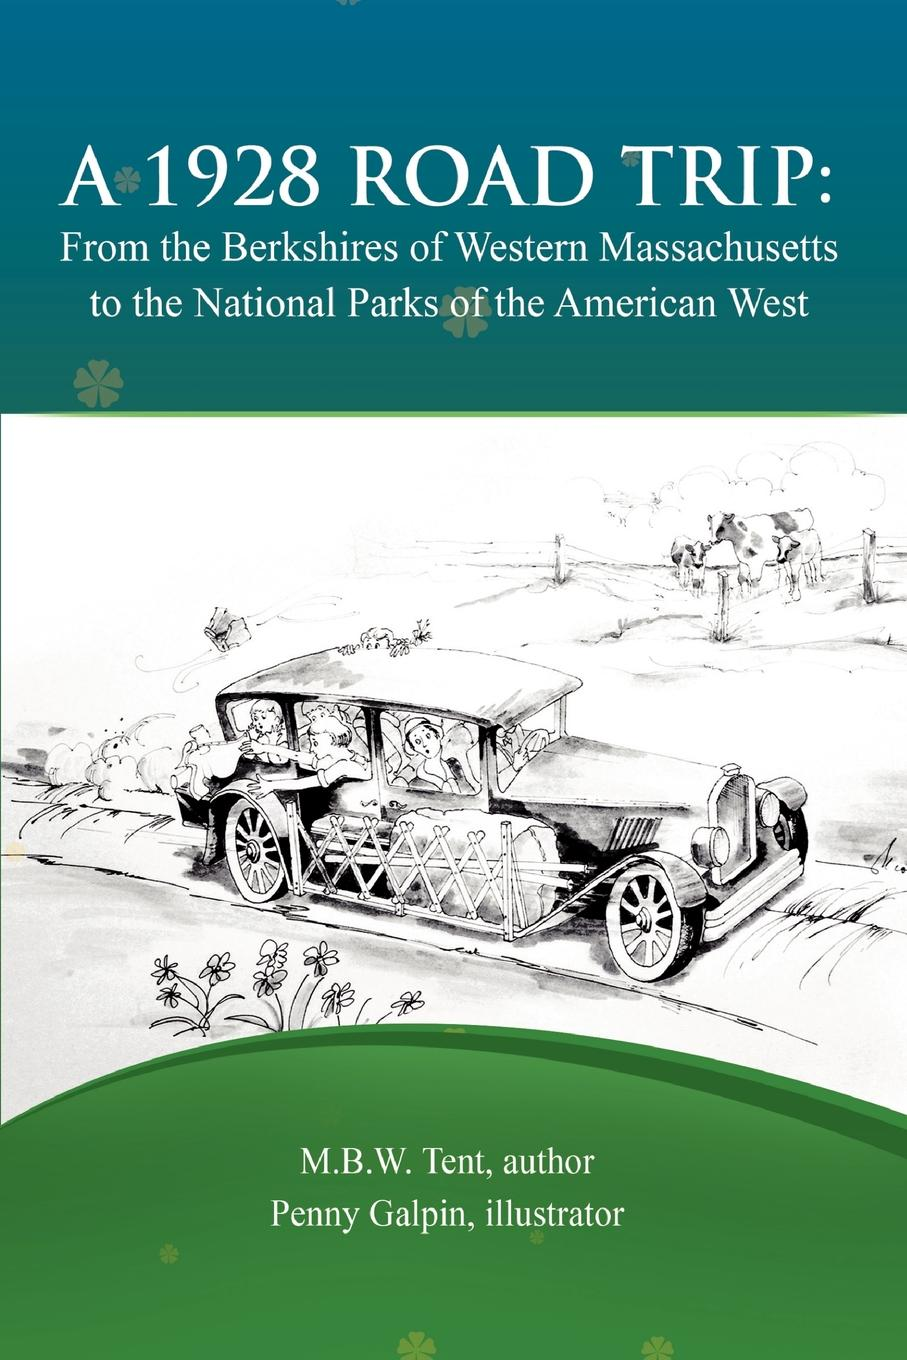 M.B.W Tent A 1928 Road Trip from the Berkshires of Western Massachusetts to the National Parks of the West цена и фото